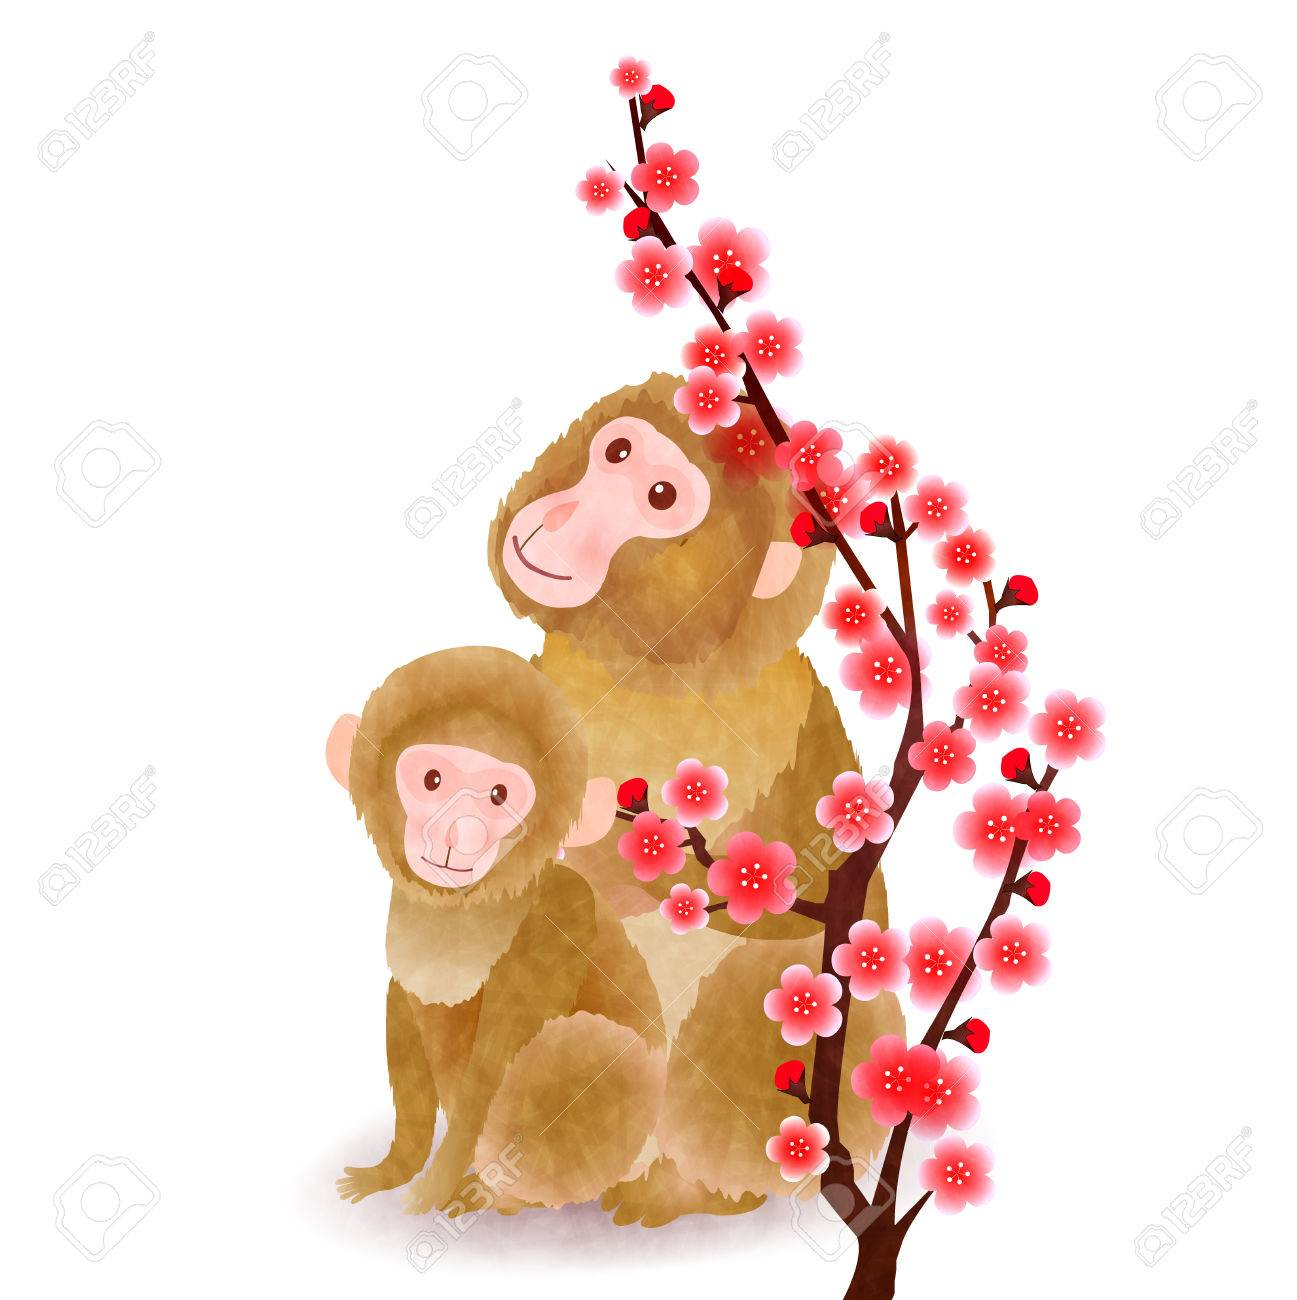 Monkey Child Plum Greeting Cards Royalty Free Cliparts Vectors And